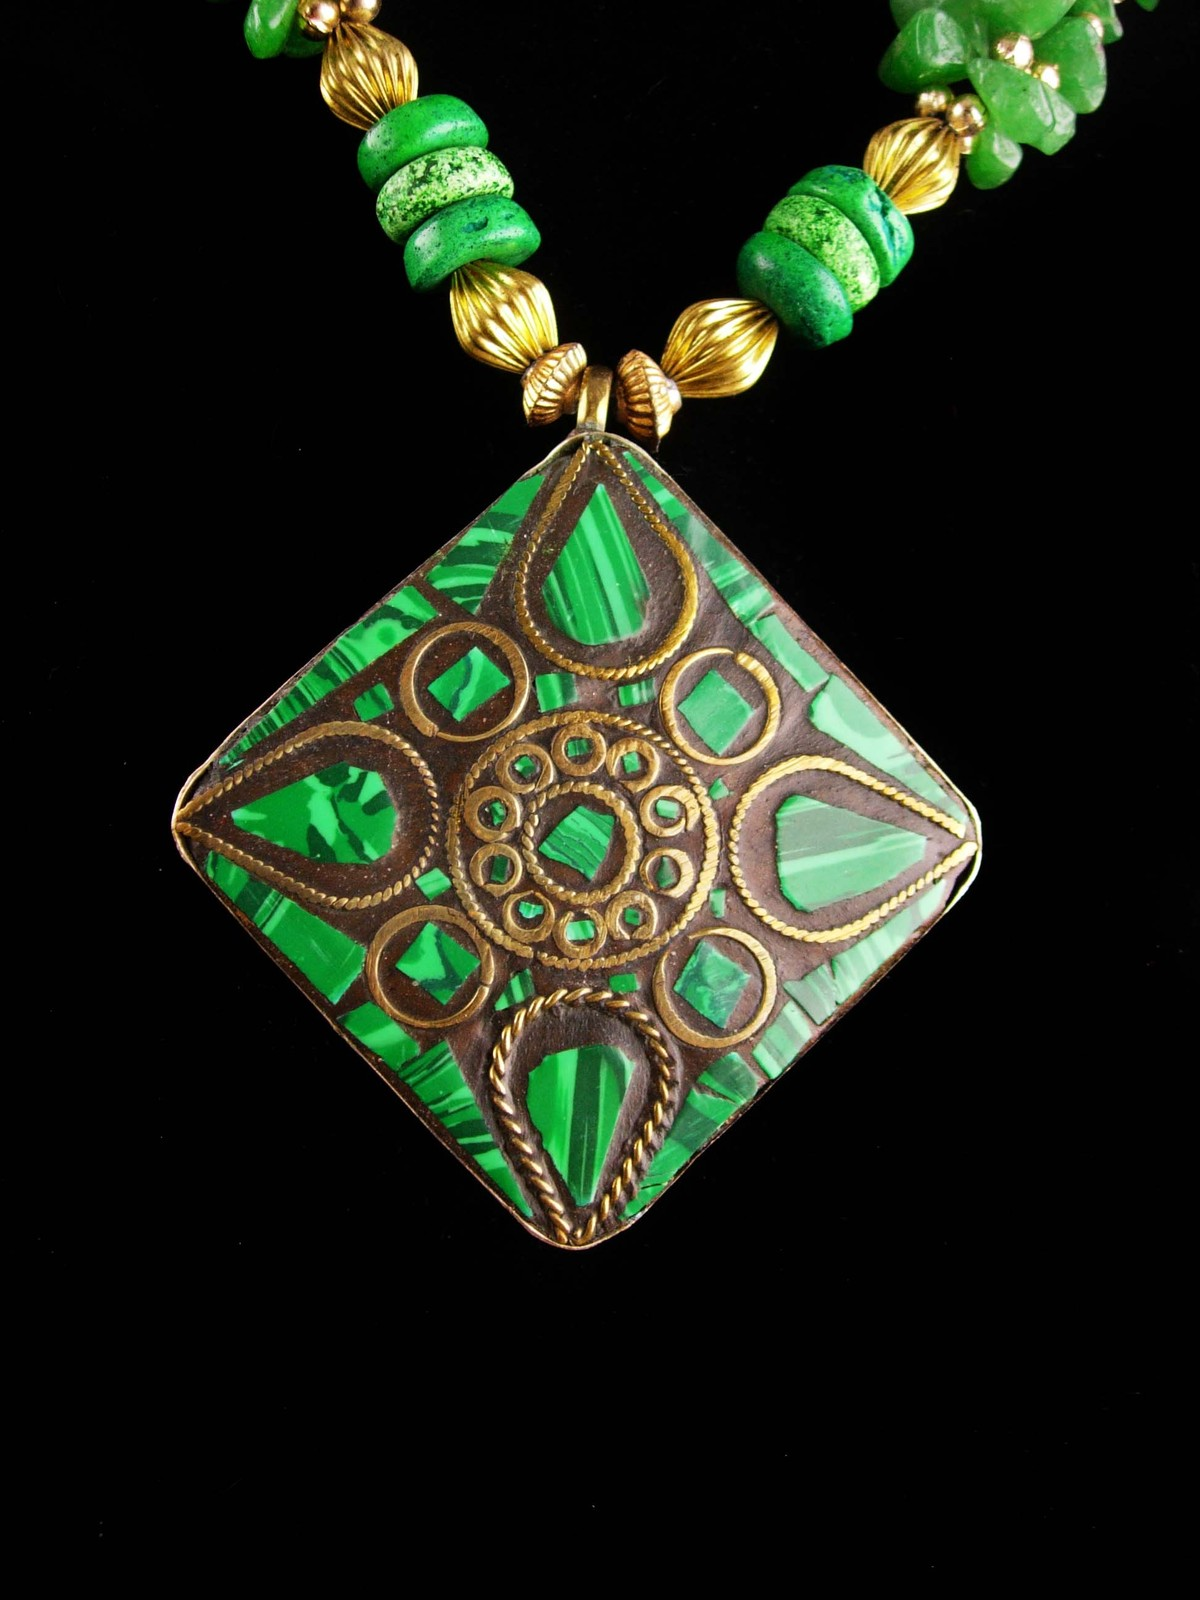 Primary image for Malachite tribal necklace / Vintage Irish Gift / green necklace / estate jewelry